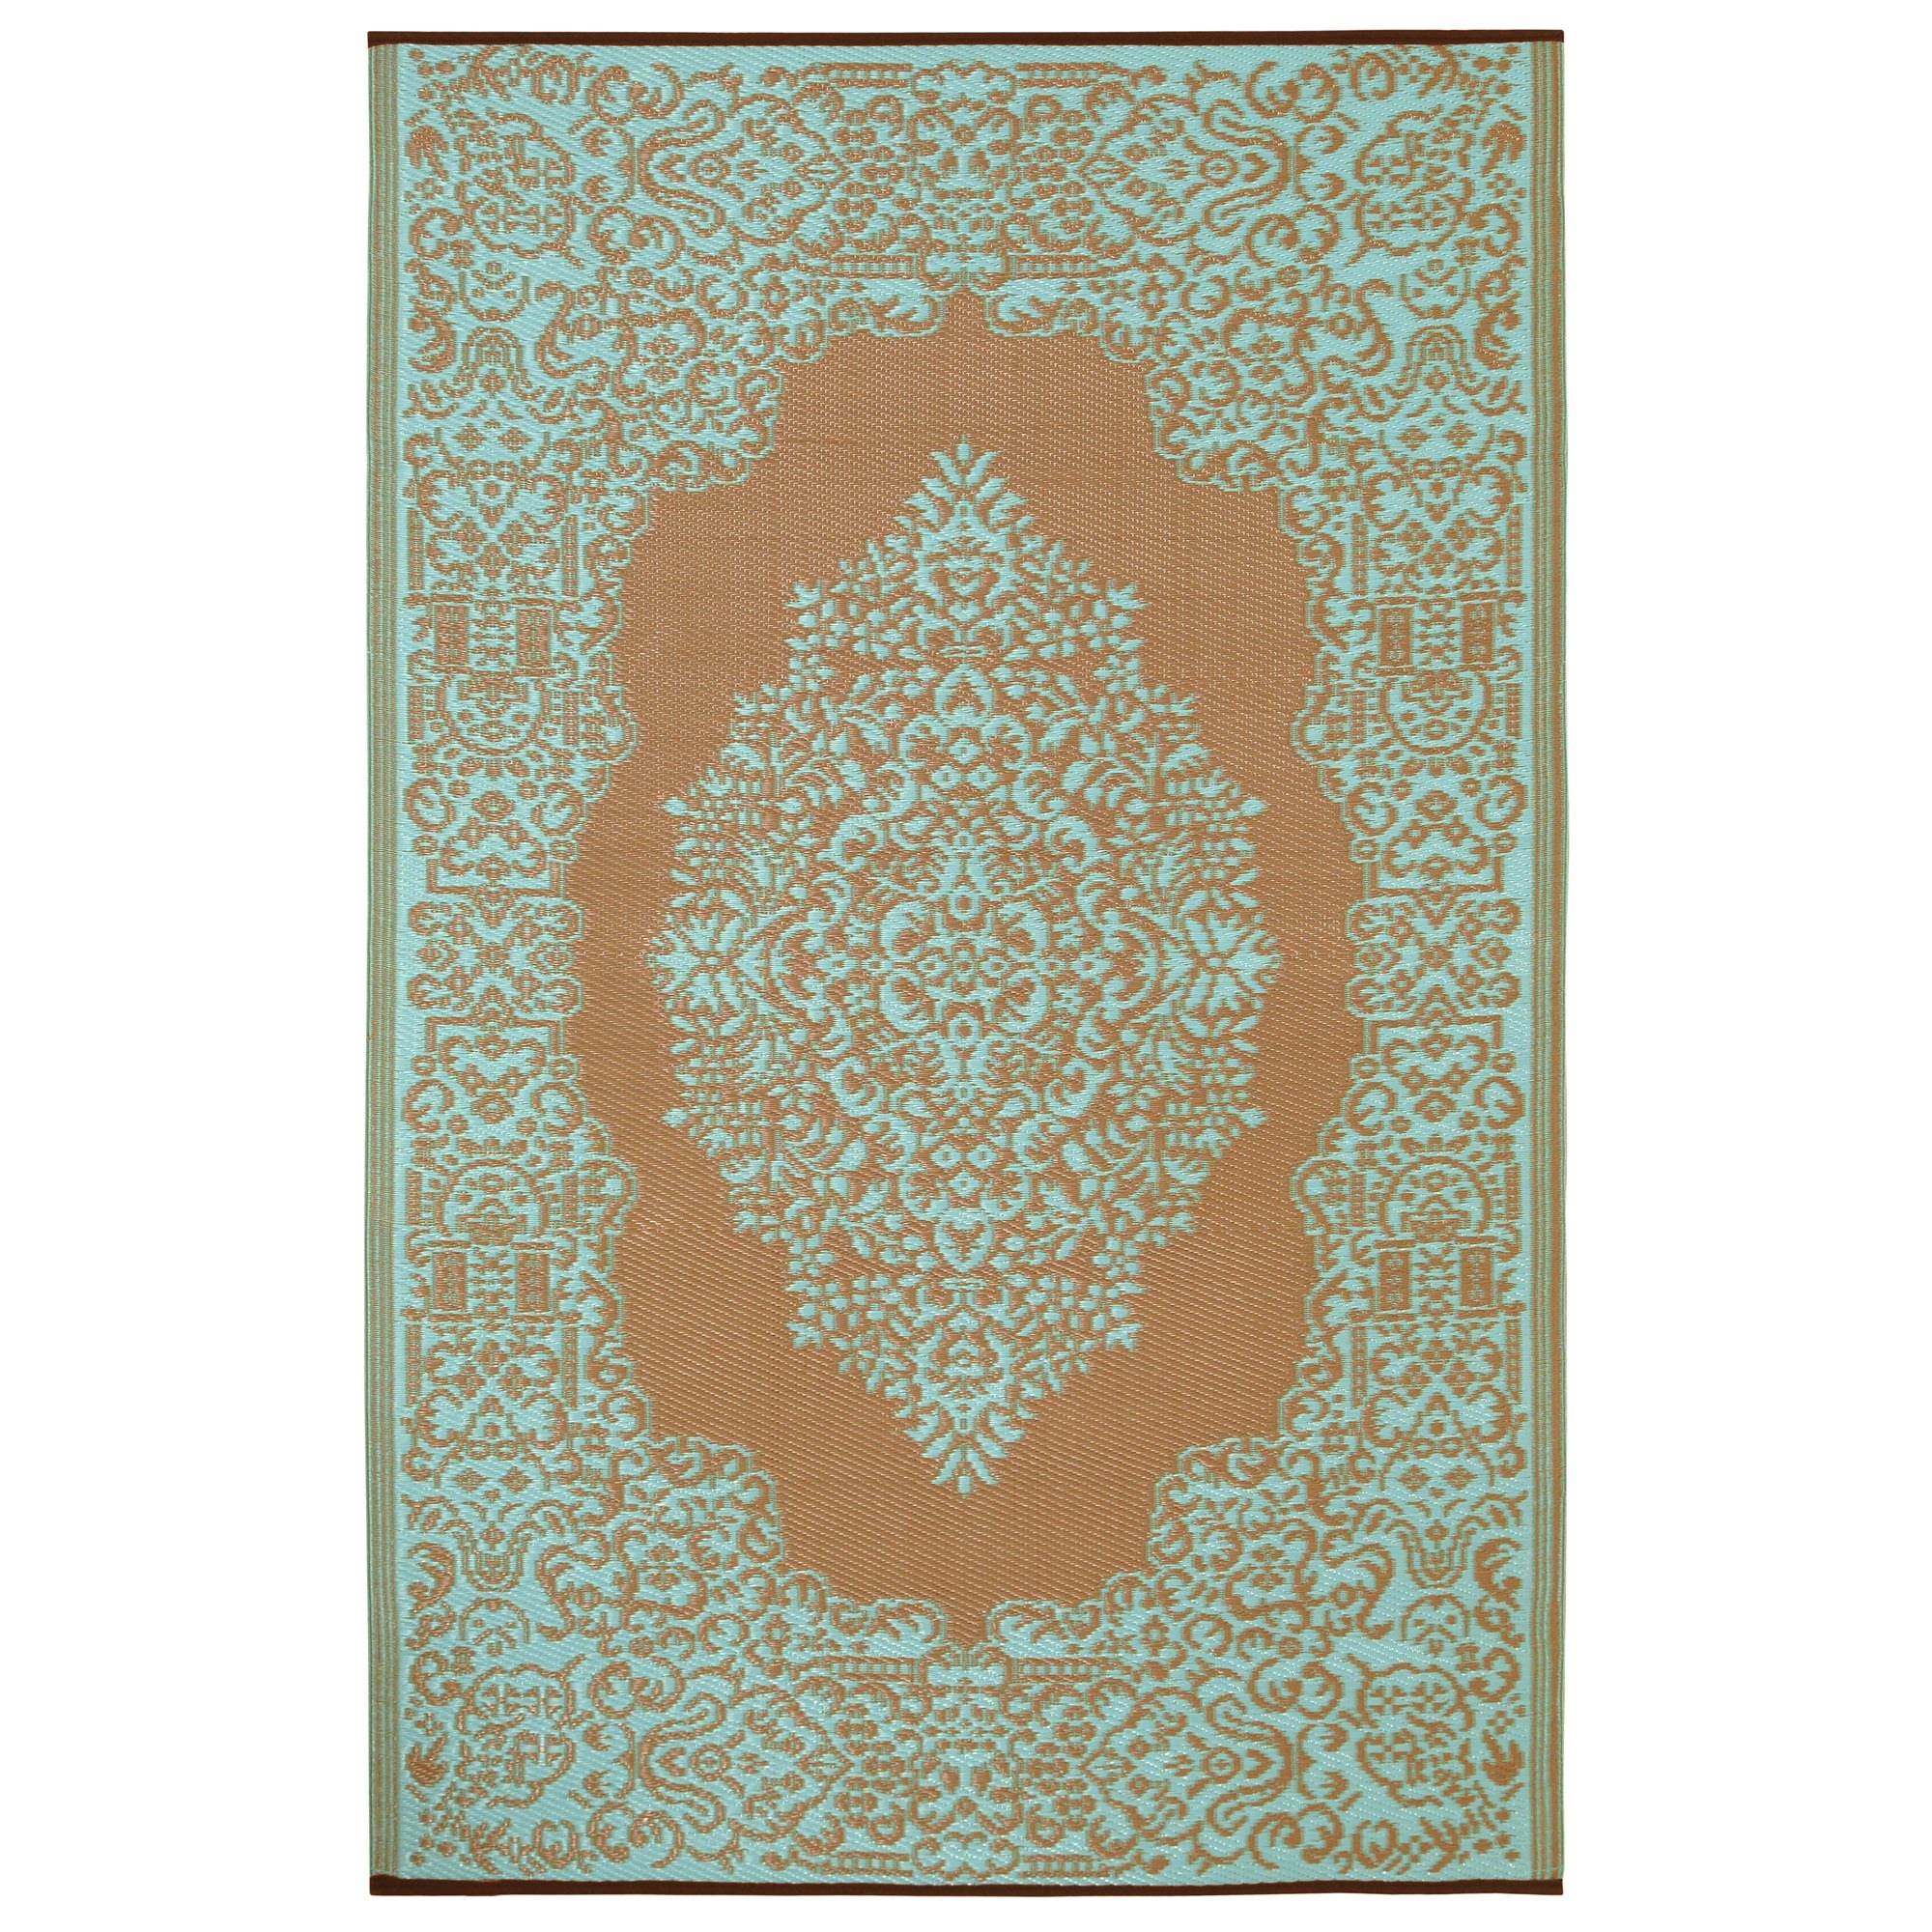 Istanbul fair aqua warm taupe outdoor mat dfohome for Warm rugs